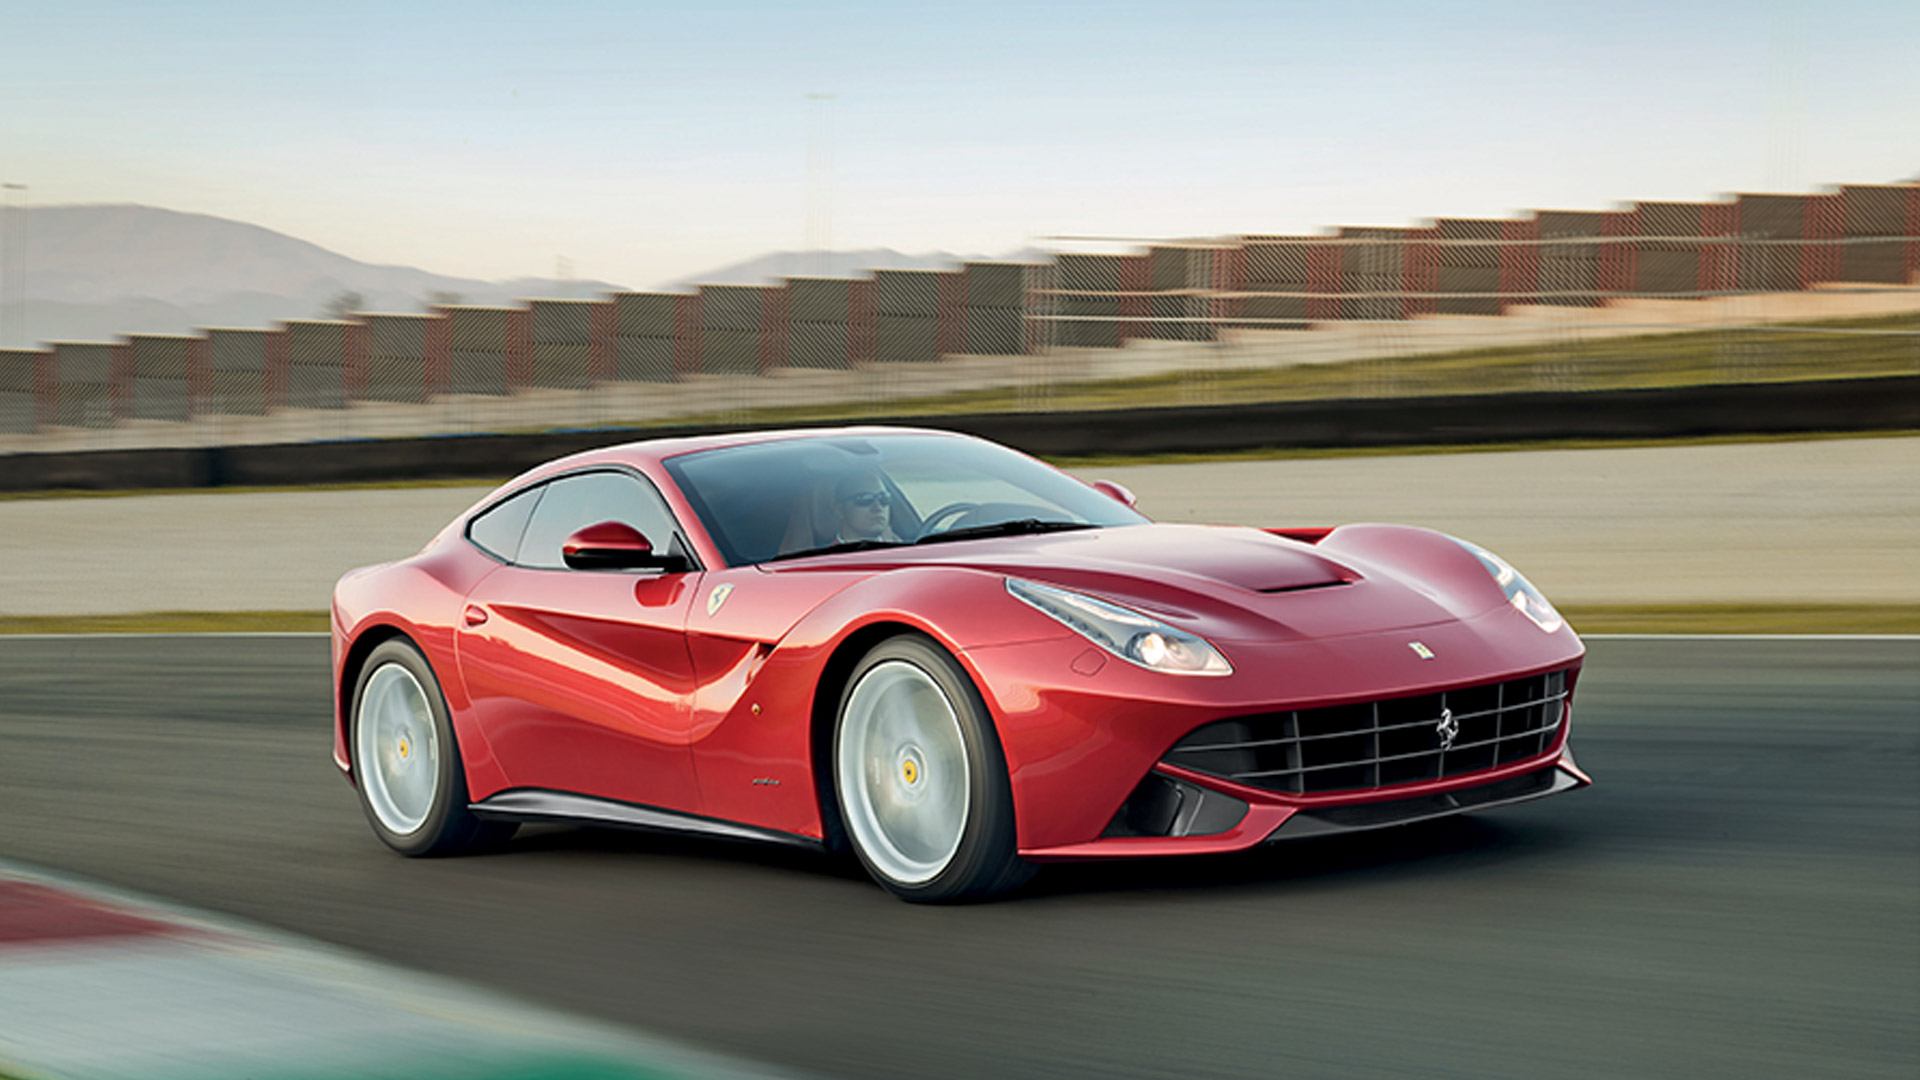 Ferrari F12 Berlinetta 2015 STD